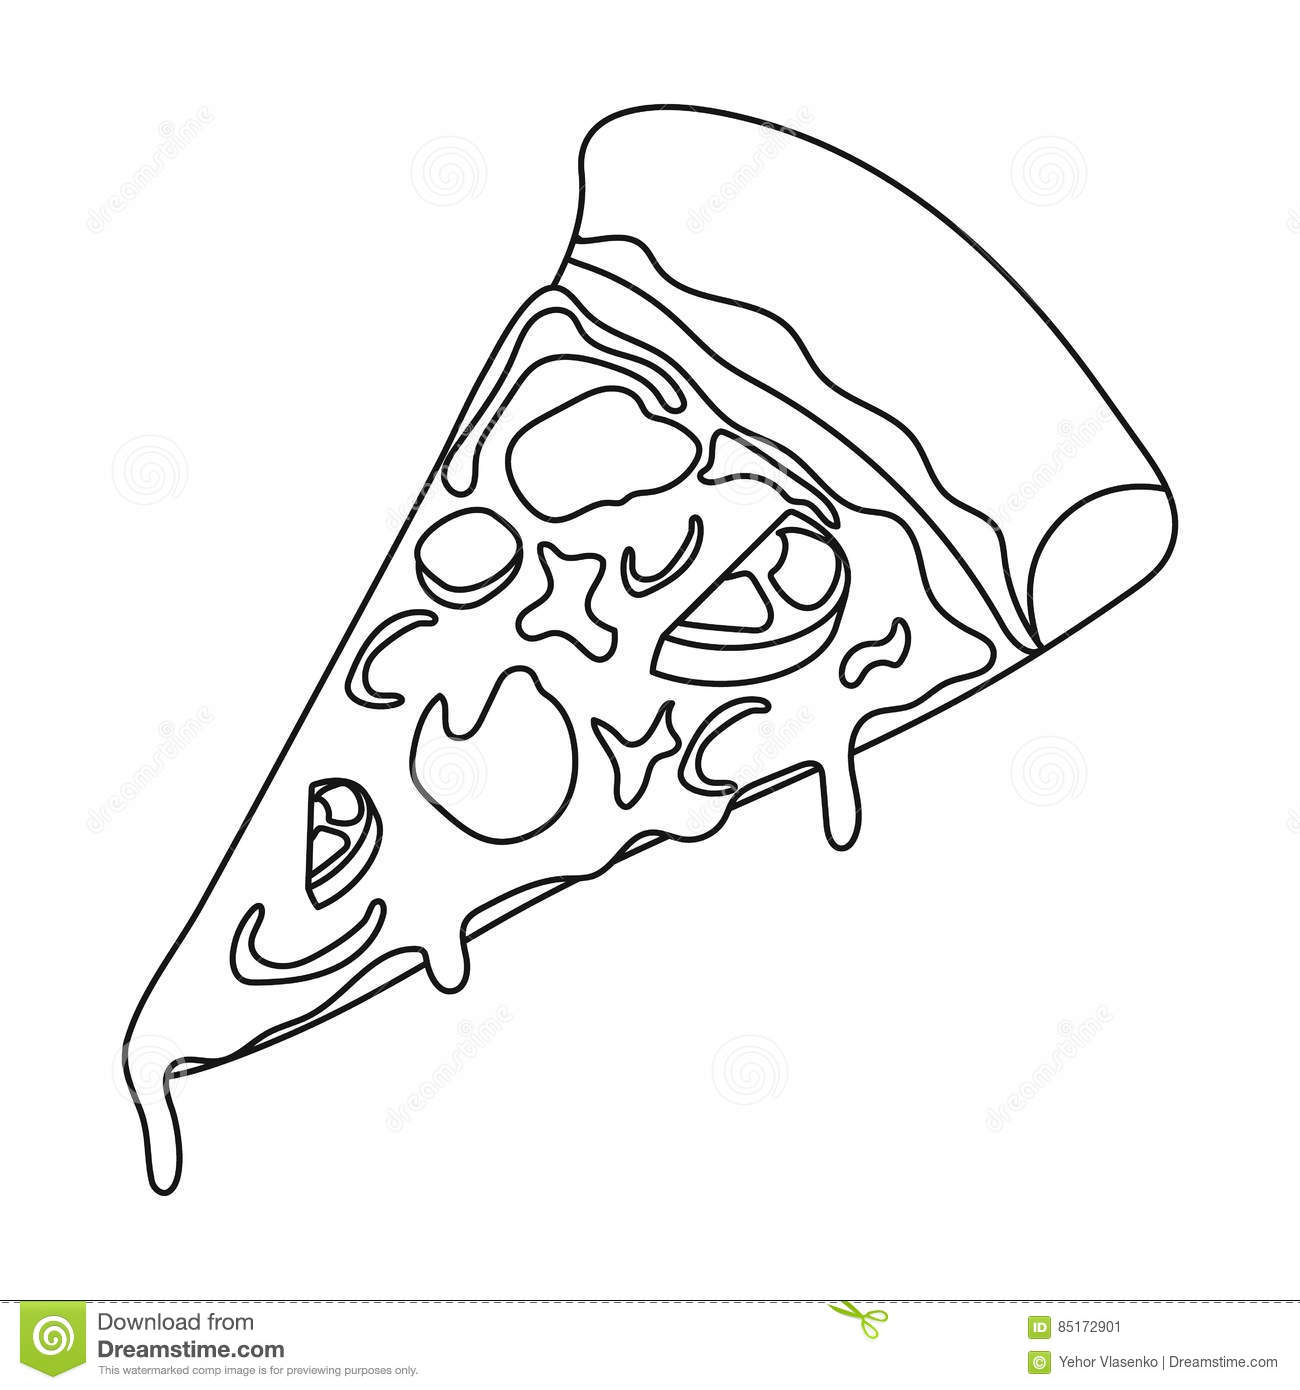 Slice Of Pizza Icon In Outline Style Isolated On White